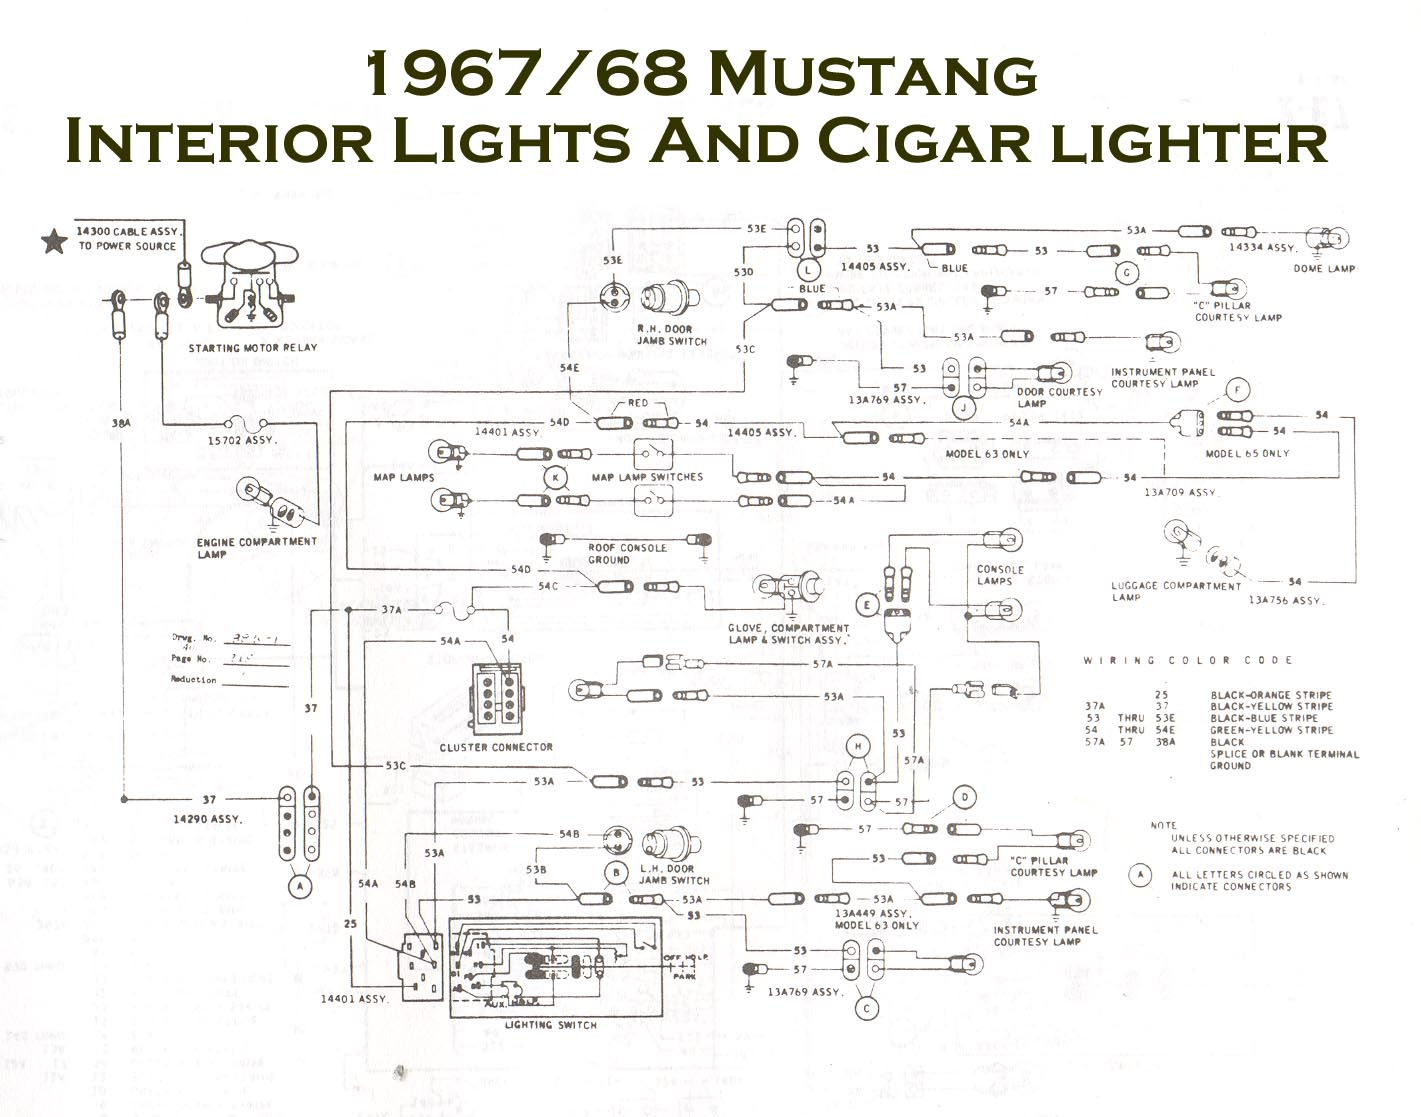 Dash Wiring Diagram 1968 Archive Of Automotive Ford 861 Vintage Mustang Diagrams Rh Midlife66 Com